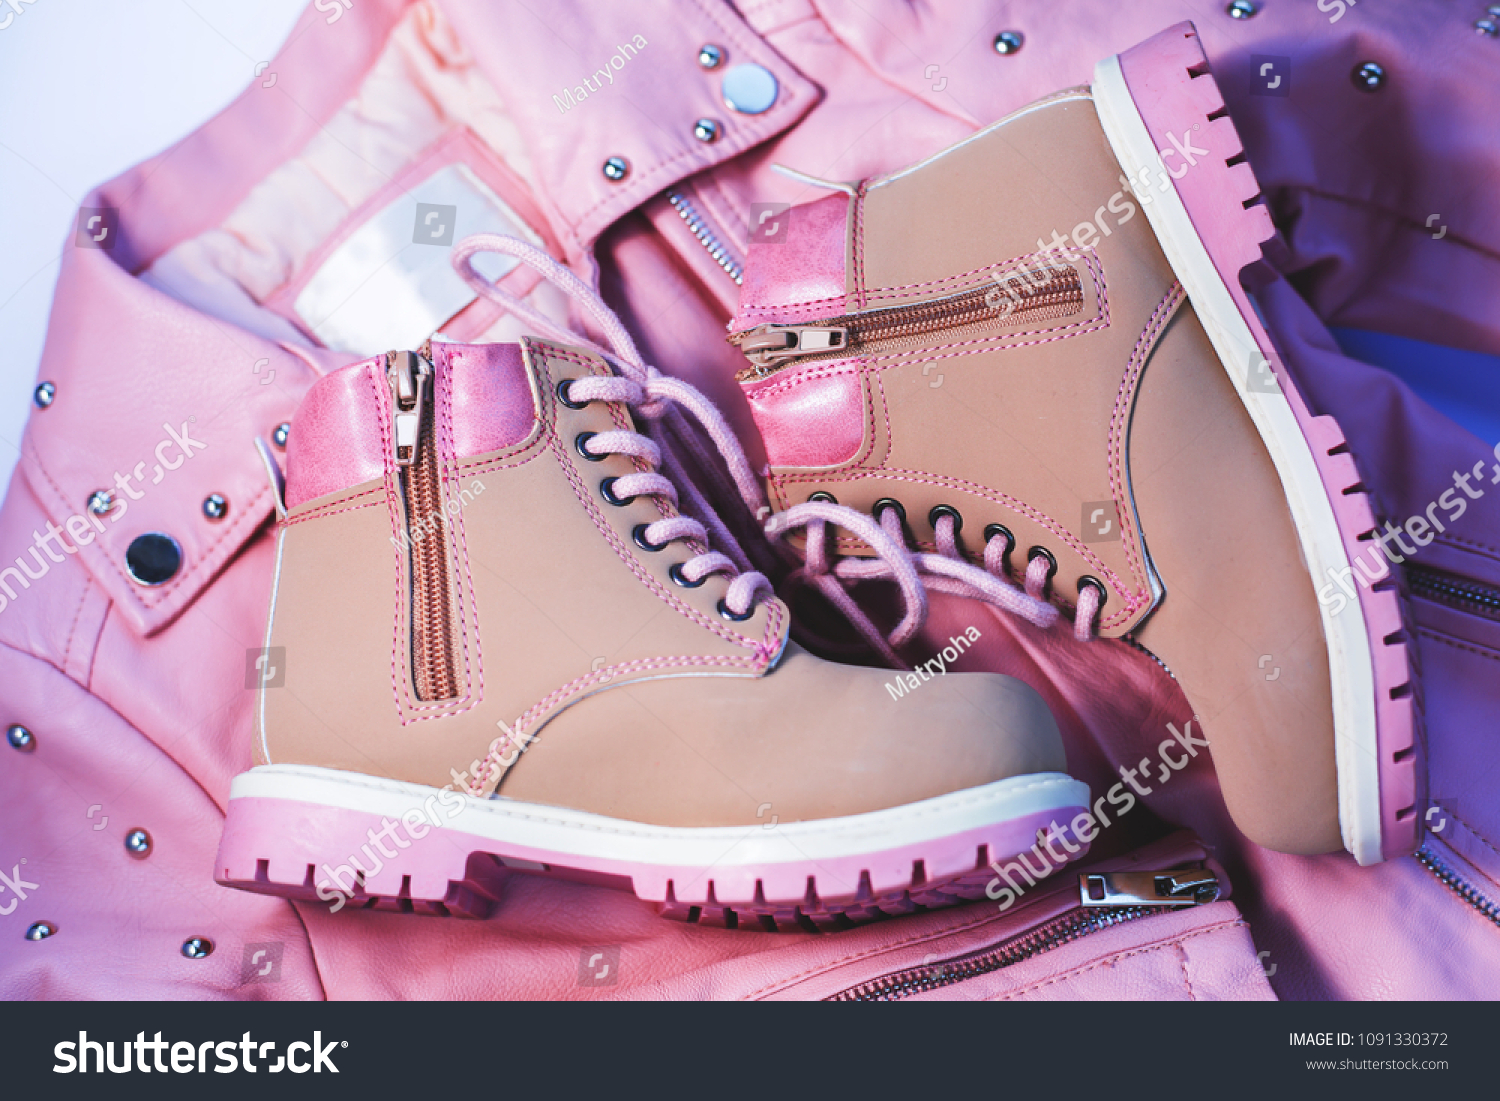 Childrens Clothes Pink Jacket Boots Top